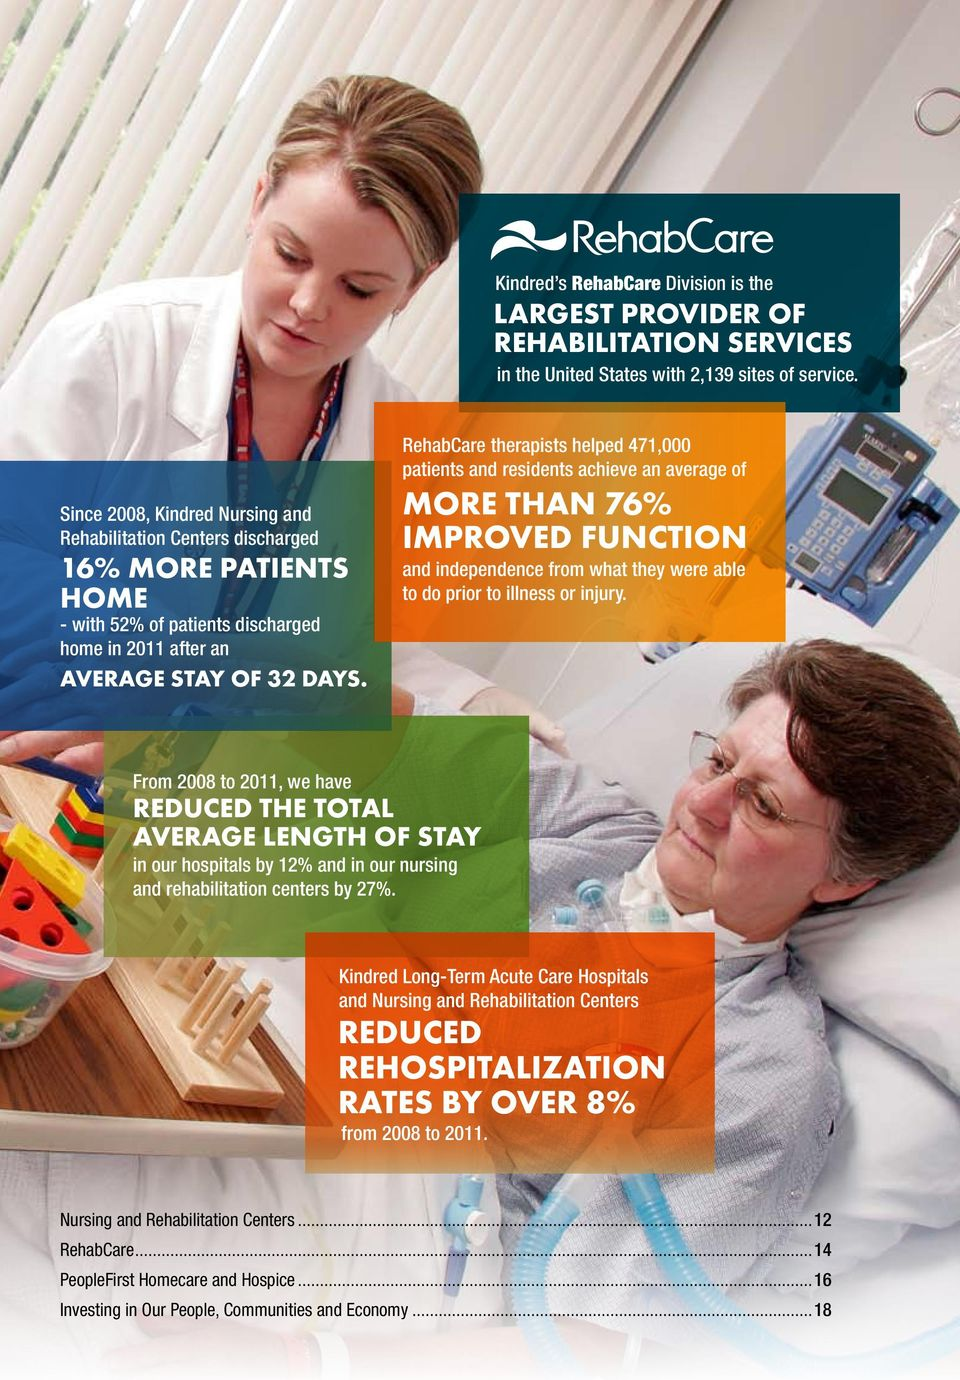 RehabCare therapists helped 471,000 patients and residents achieve an average of more than 76% improved function and independence from what they were able to do prior to illness or injury.